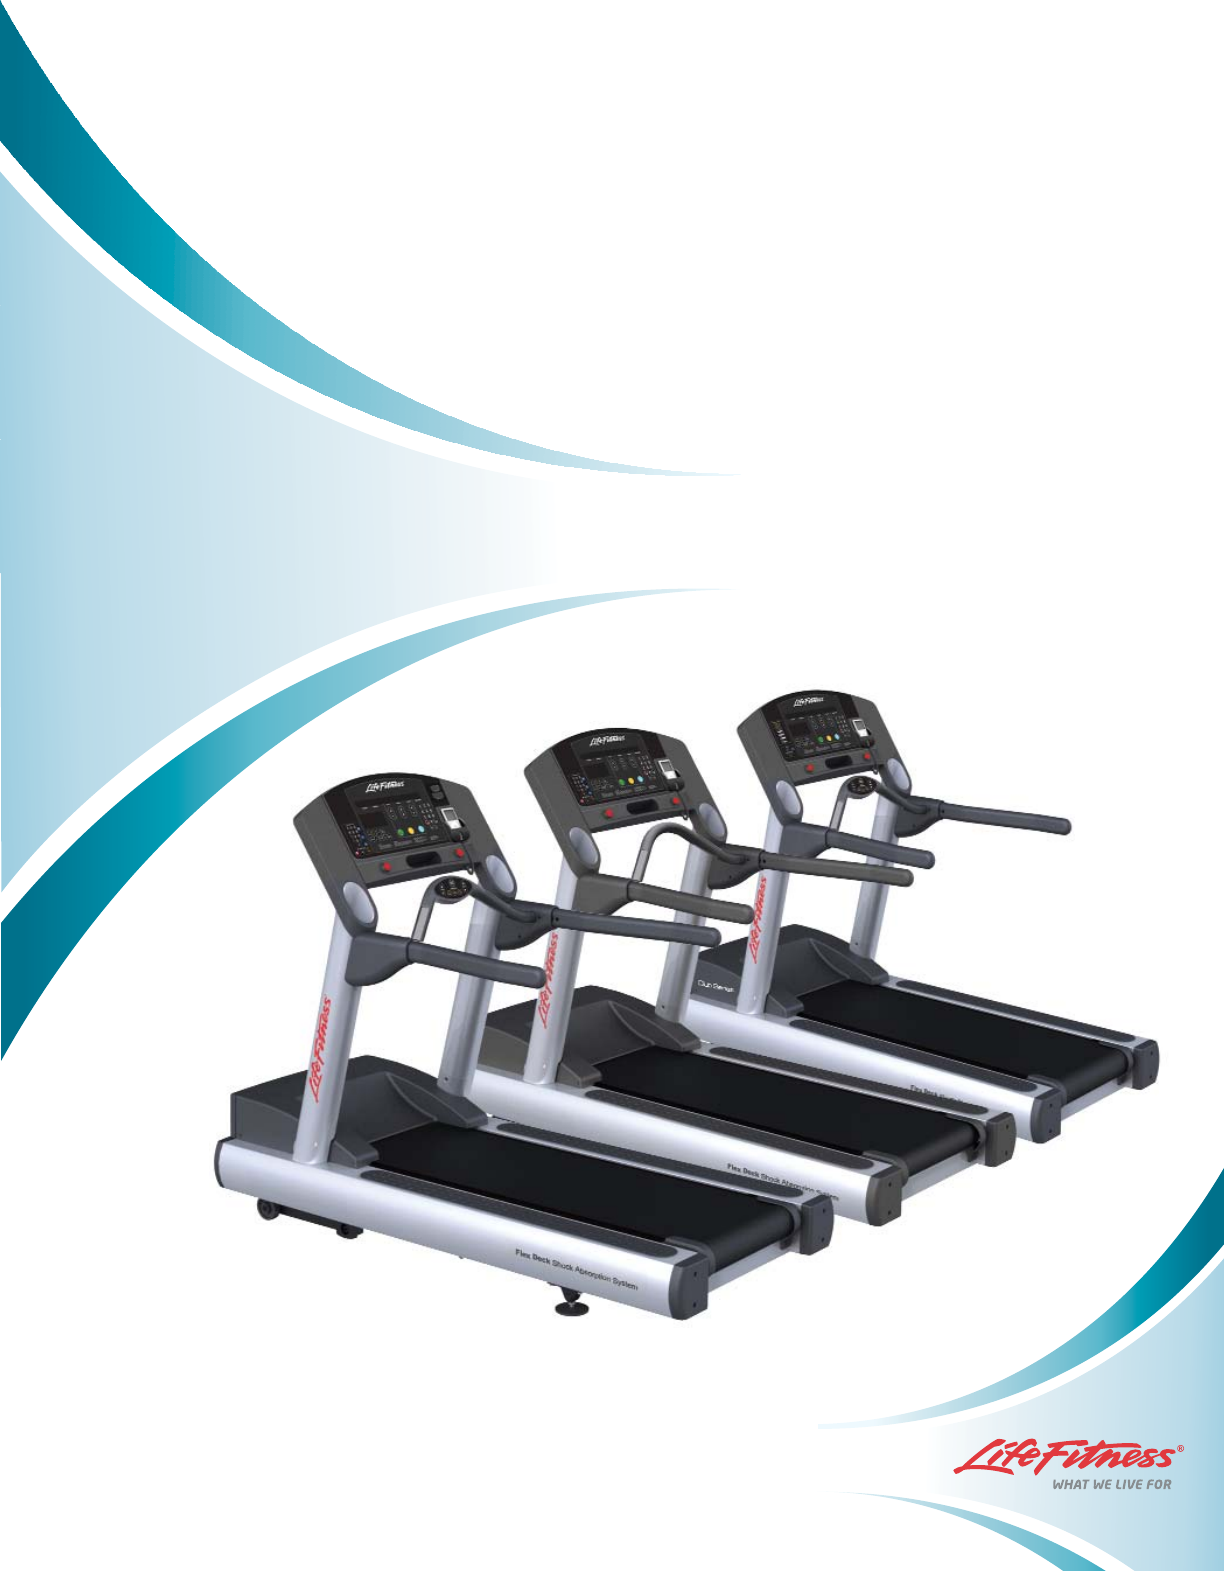 life fitness treadmill clst user guide manualsonline com rh tv manualsonline com life fitness 95ti treadmill owners manual life fitness 9500hr treadmill owners manual